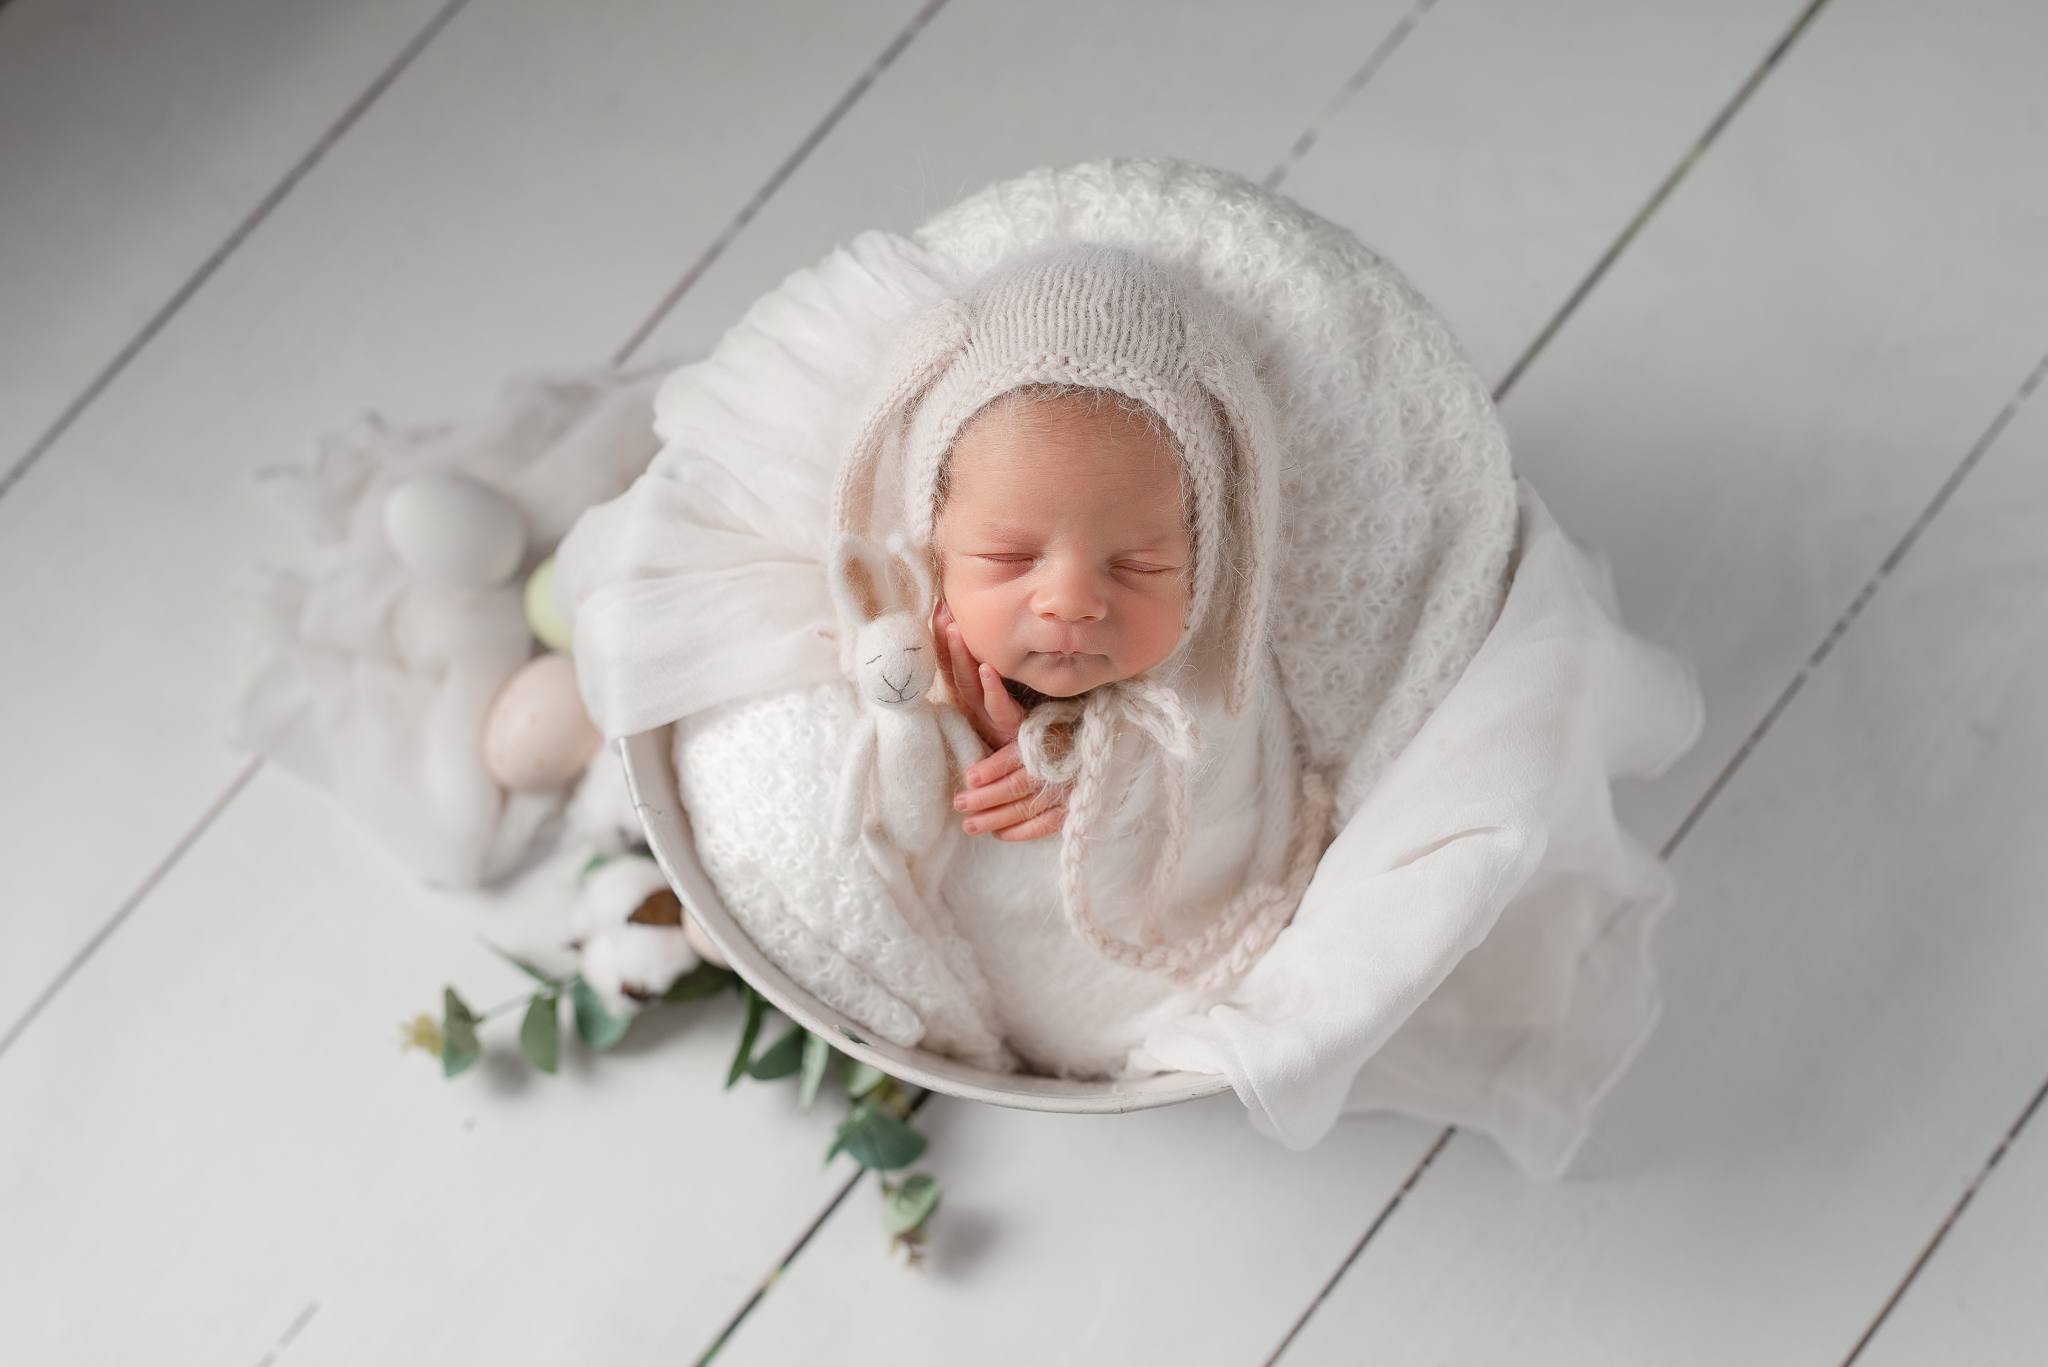 Newborn446NaomiLuciennePhotography032019-Edit.jpg